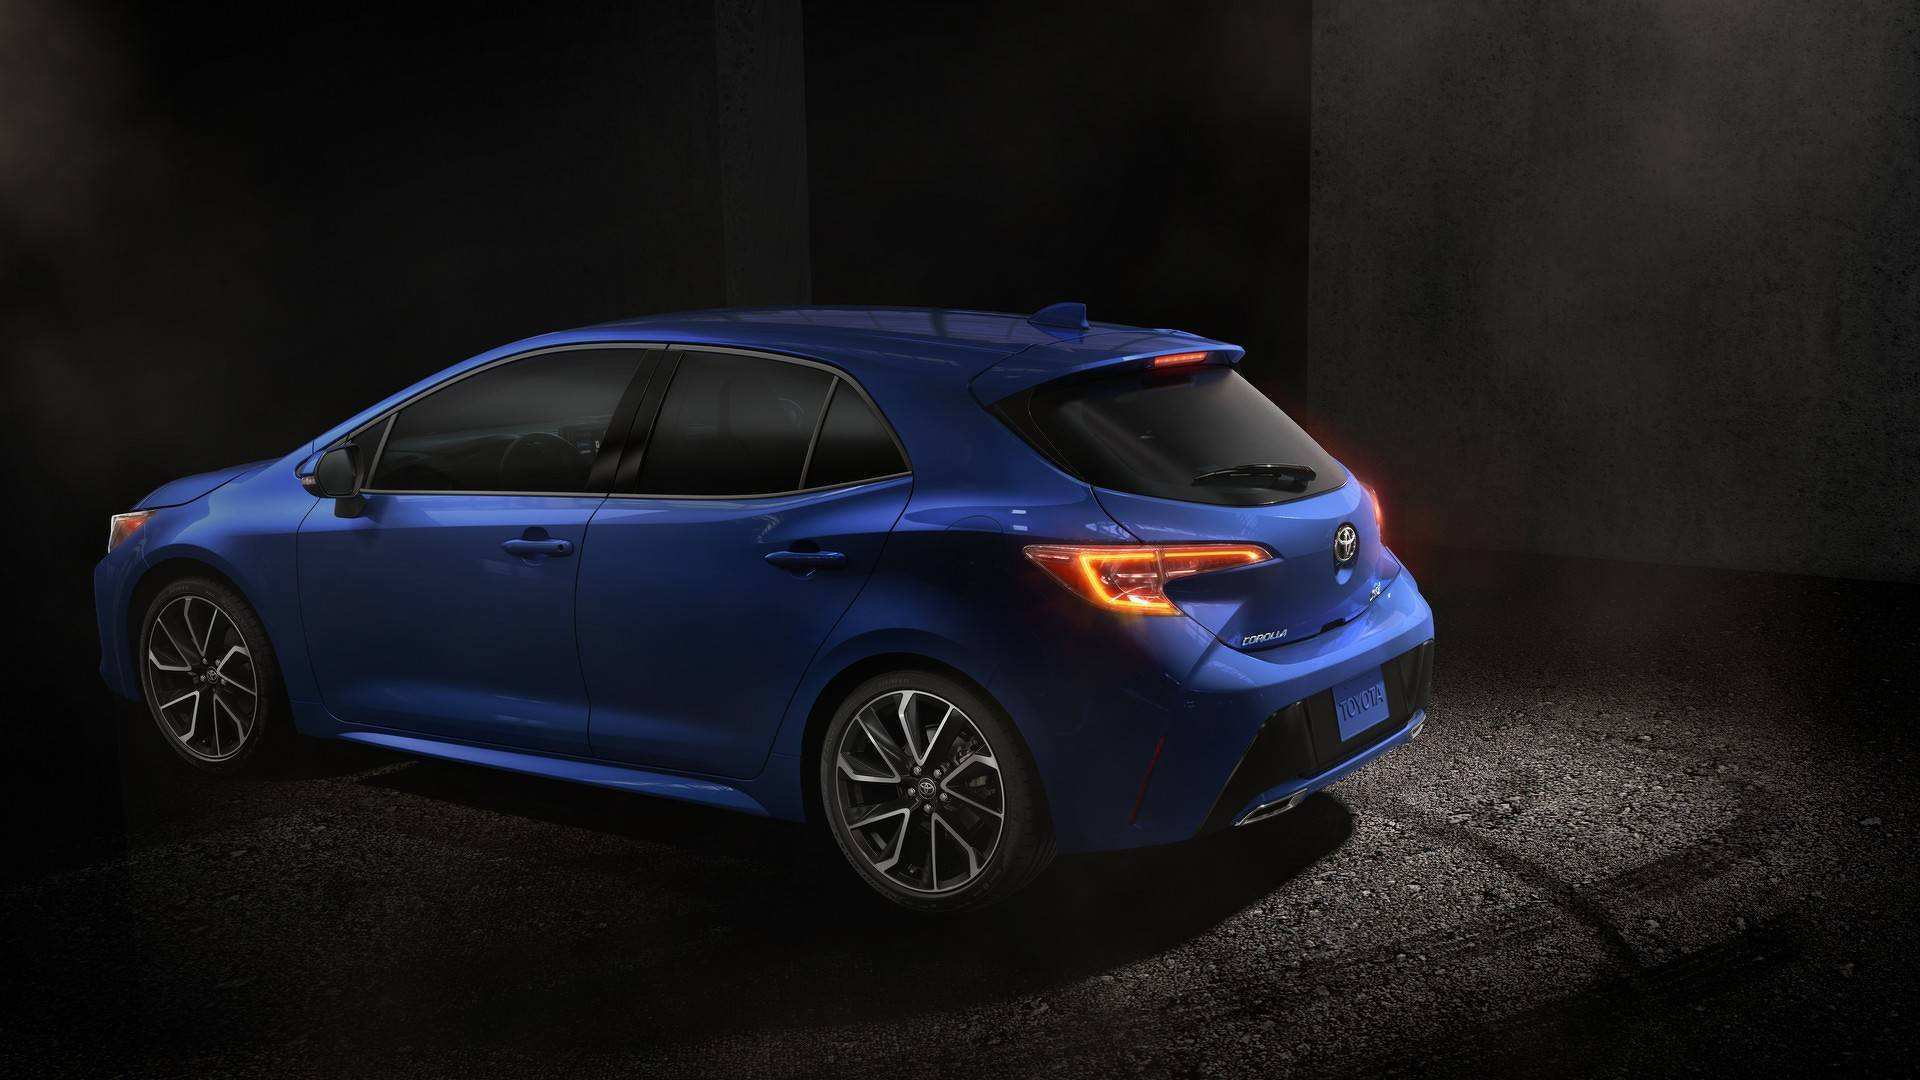 96 Gallery of Toyota Corolla 2019 Uk Performance and New Engine with Toyota Corolla 2019 Uk